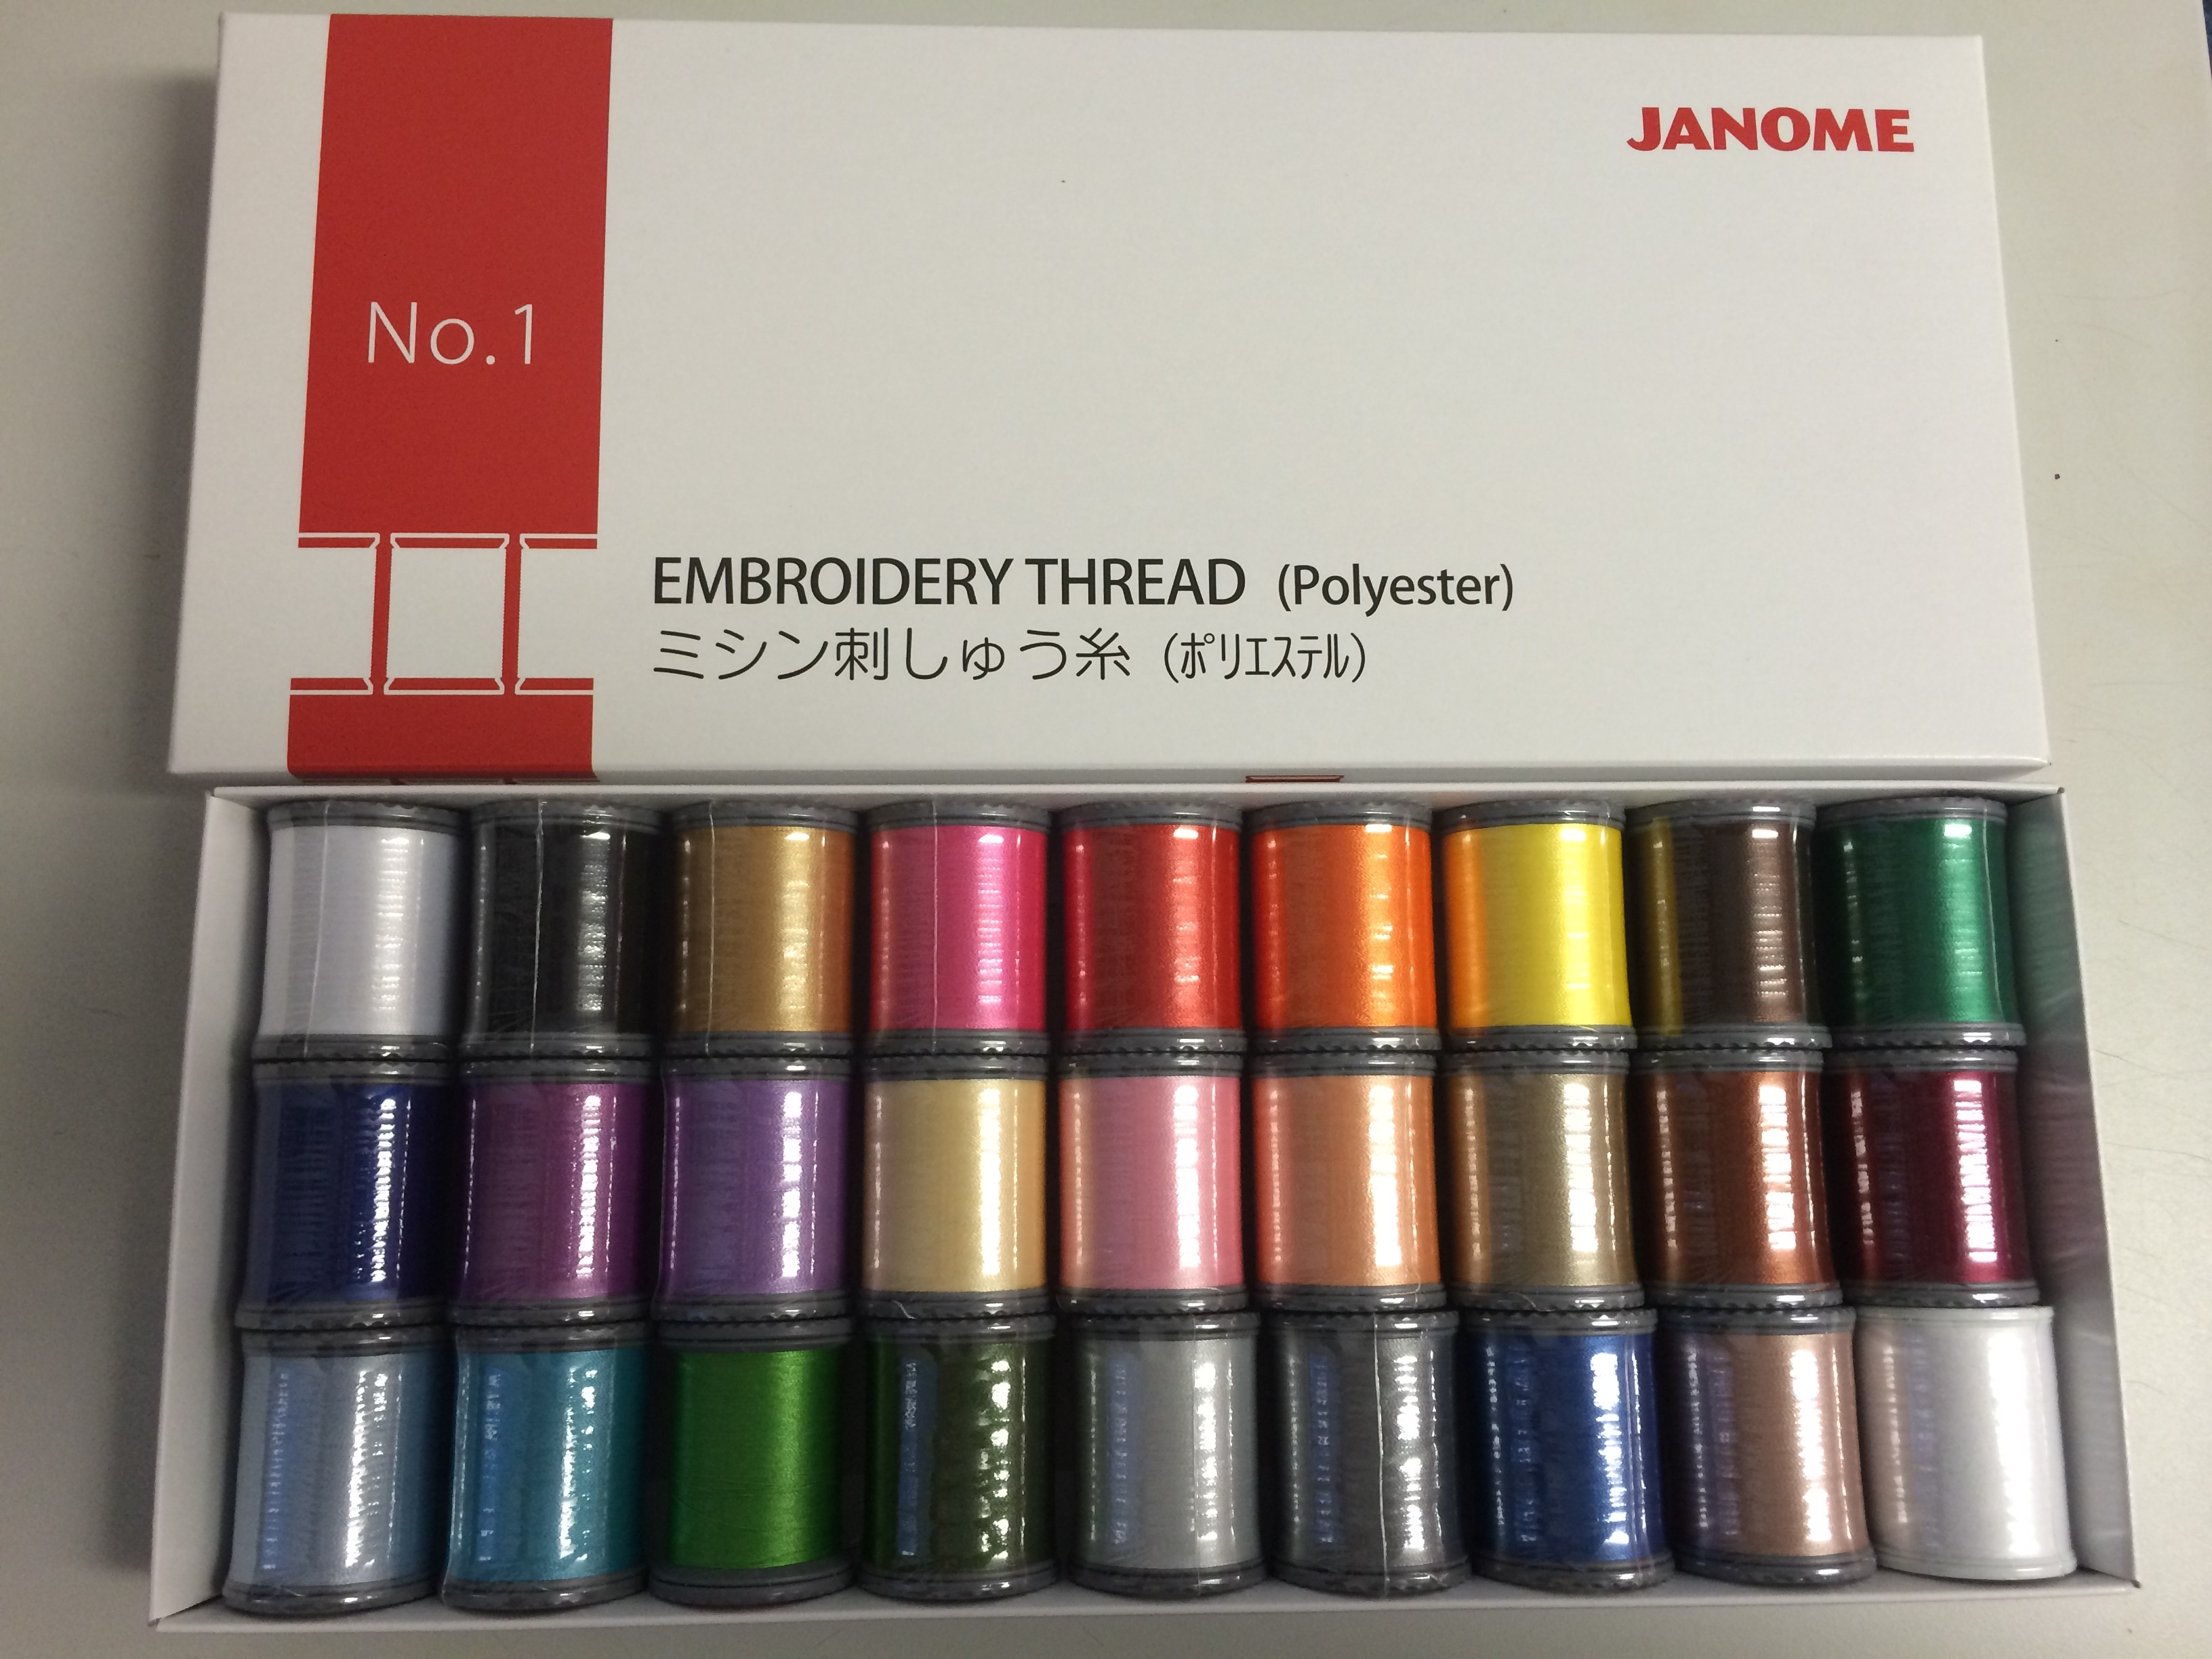 Janome Embroidery Thread (Box 1)